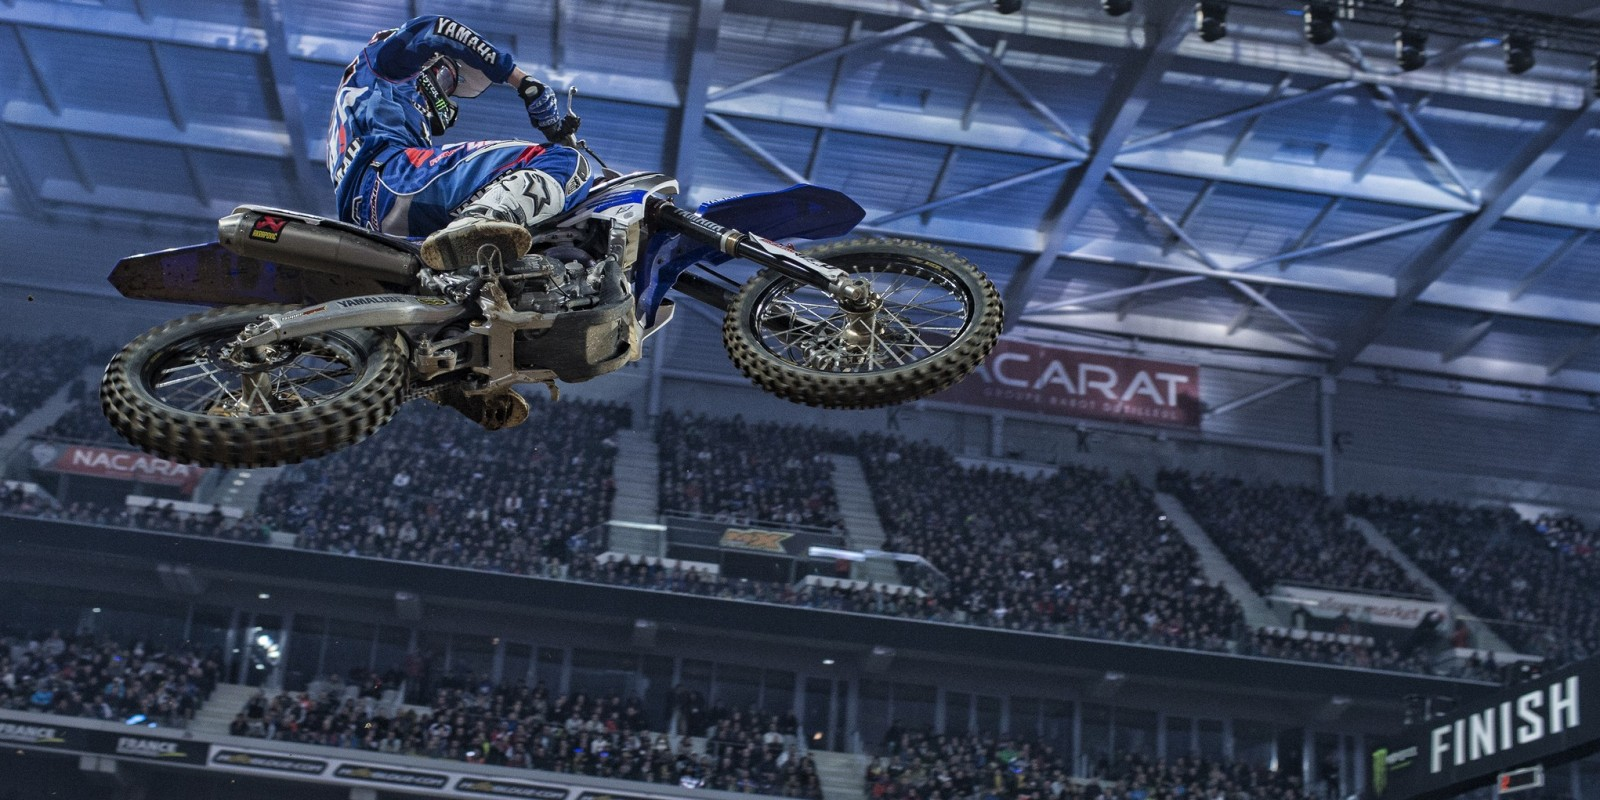 Romain Febvre at the 2015 Supercross in Stade Pierre Mauroy